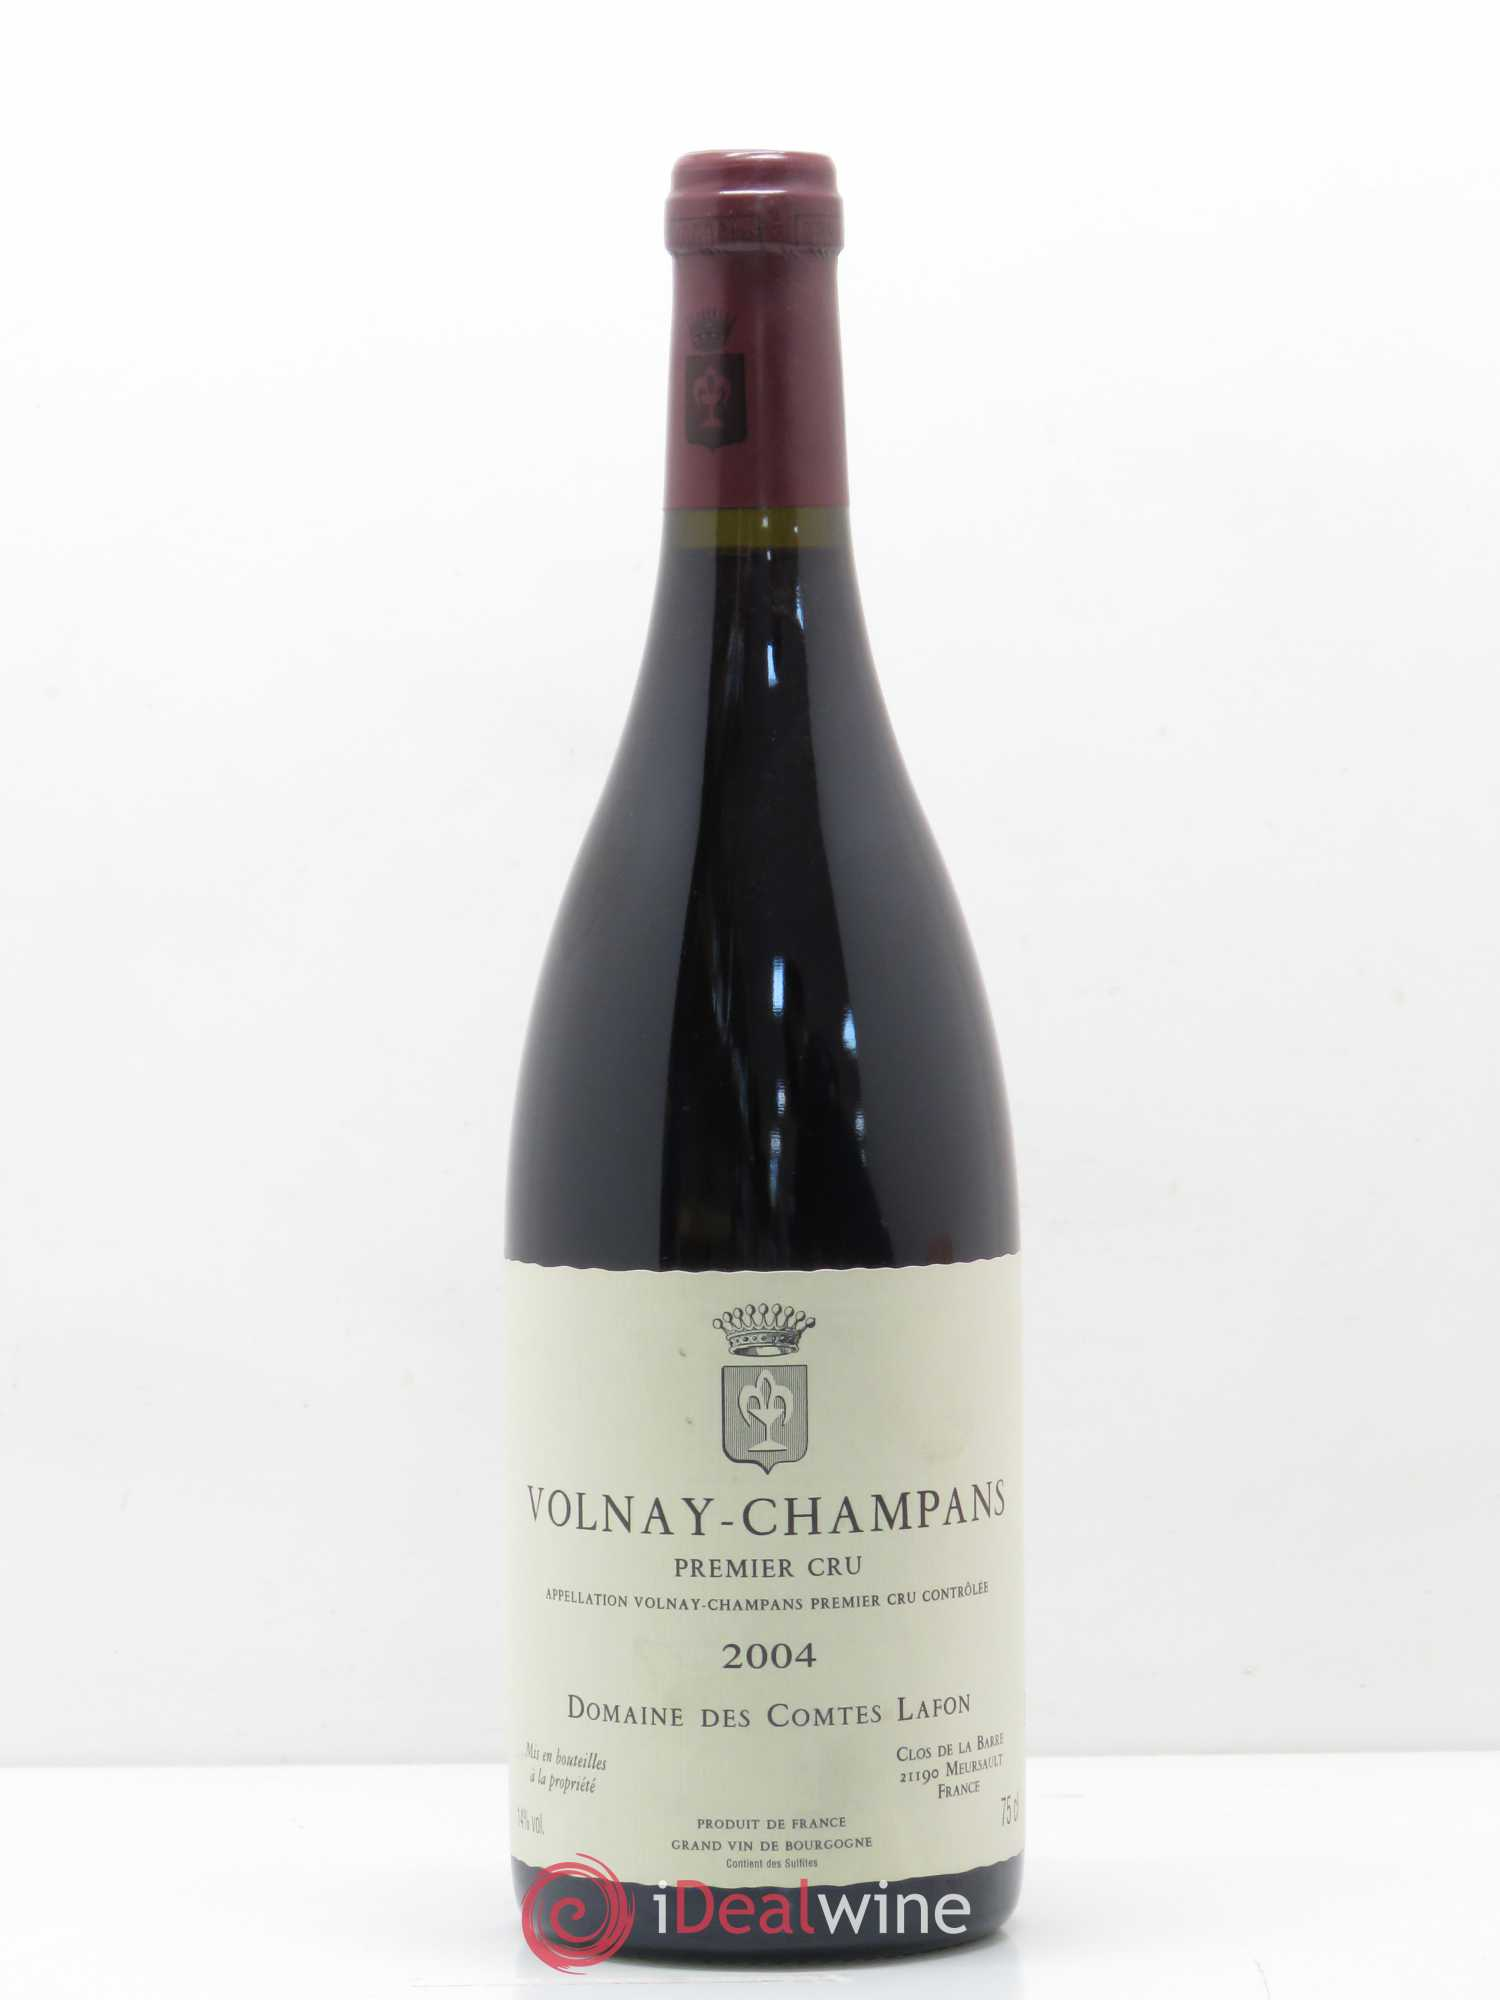 Volnay 1er Cru Champans Comtes Lafon (Domaine des)  2004 - Lot of 1 Bottle